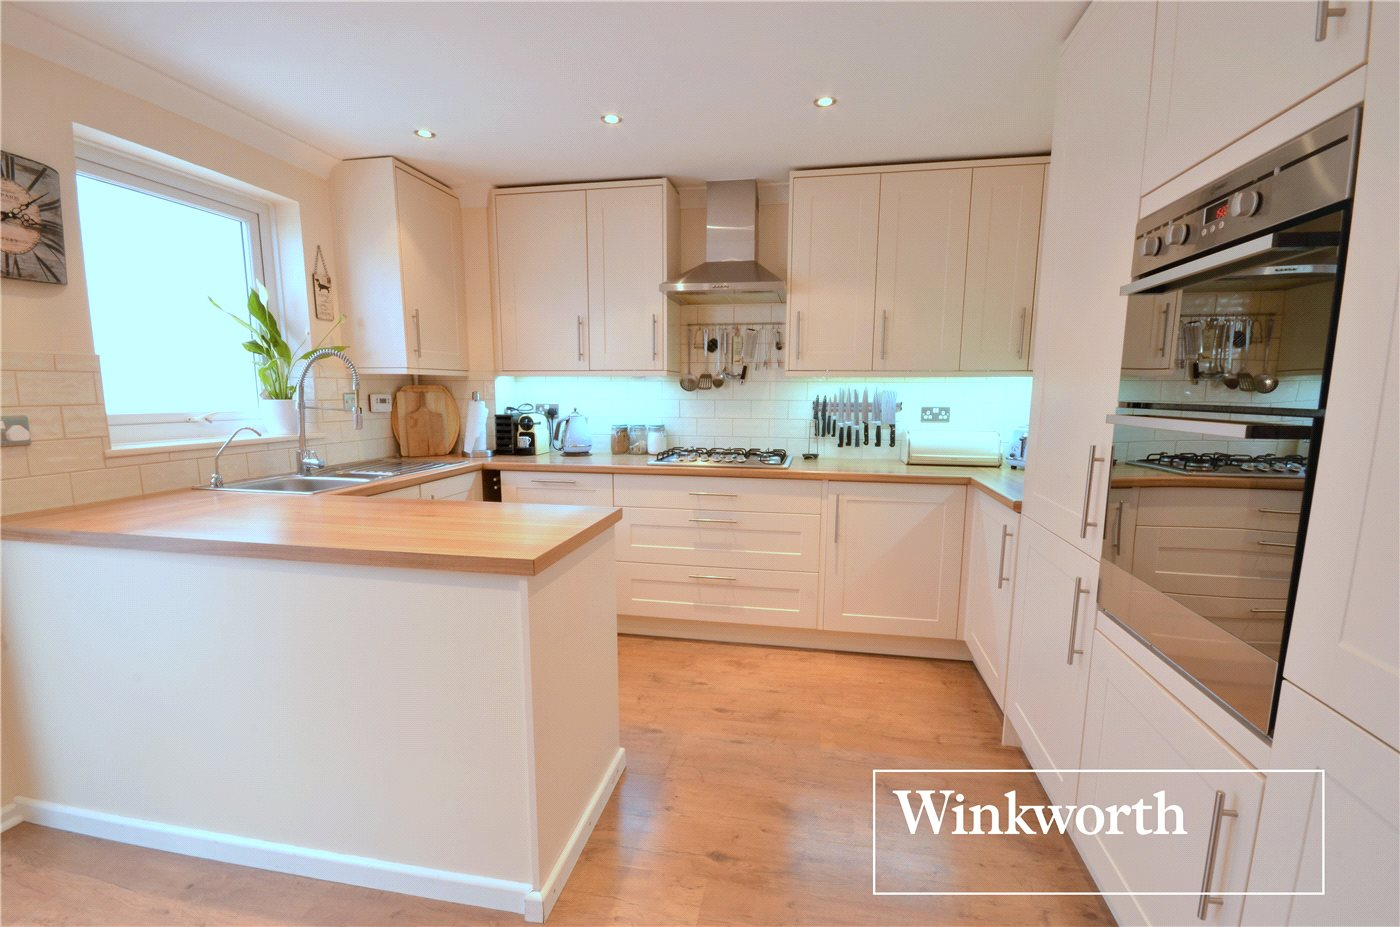 4 Bedrooms House for sale in Clydesdale Close, Borehamwood, Hertfordshire, WD6